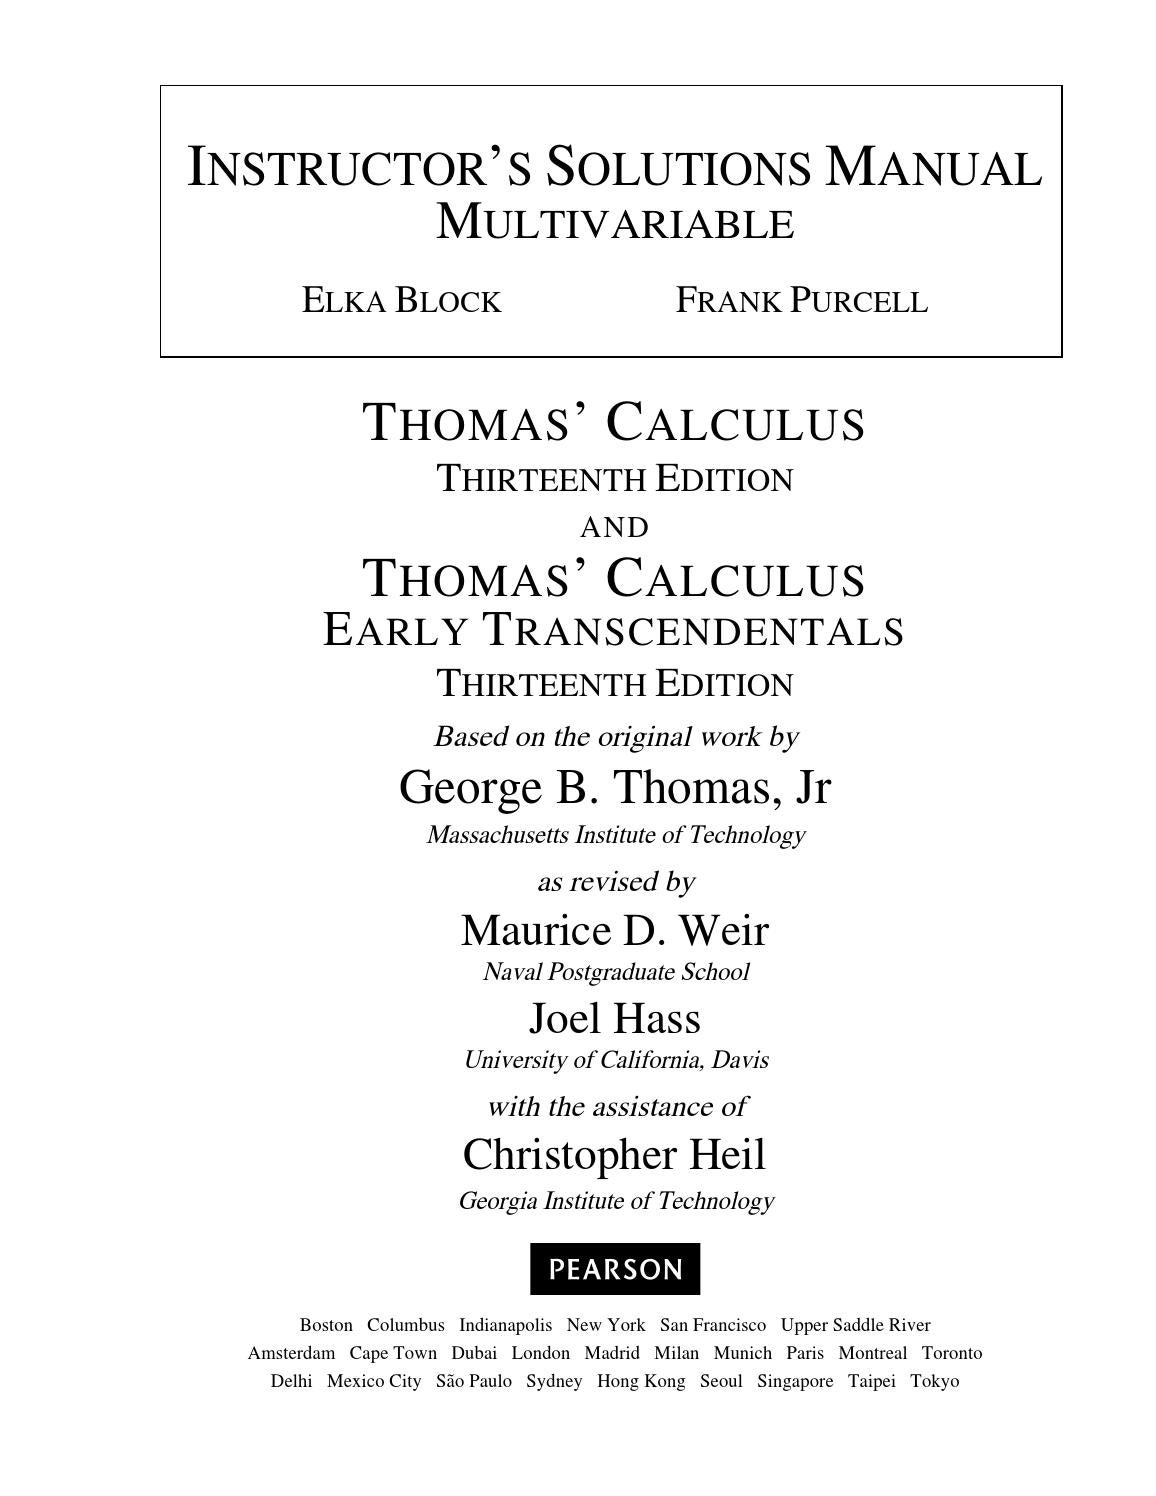 Thomas Calculus 13th Edition Thomas Solutions Manual by a394695247 - issuu